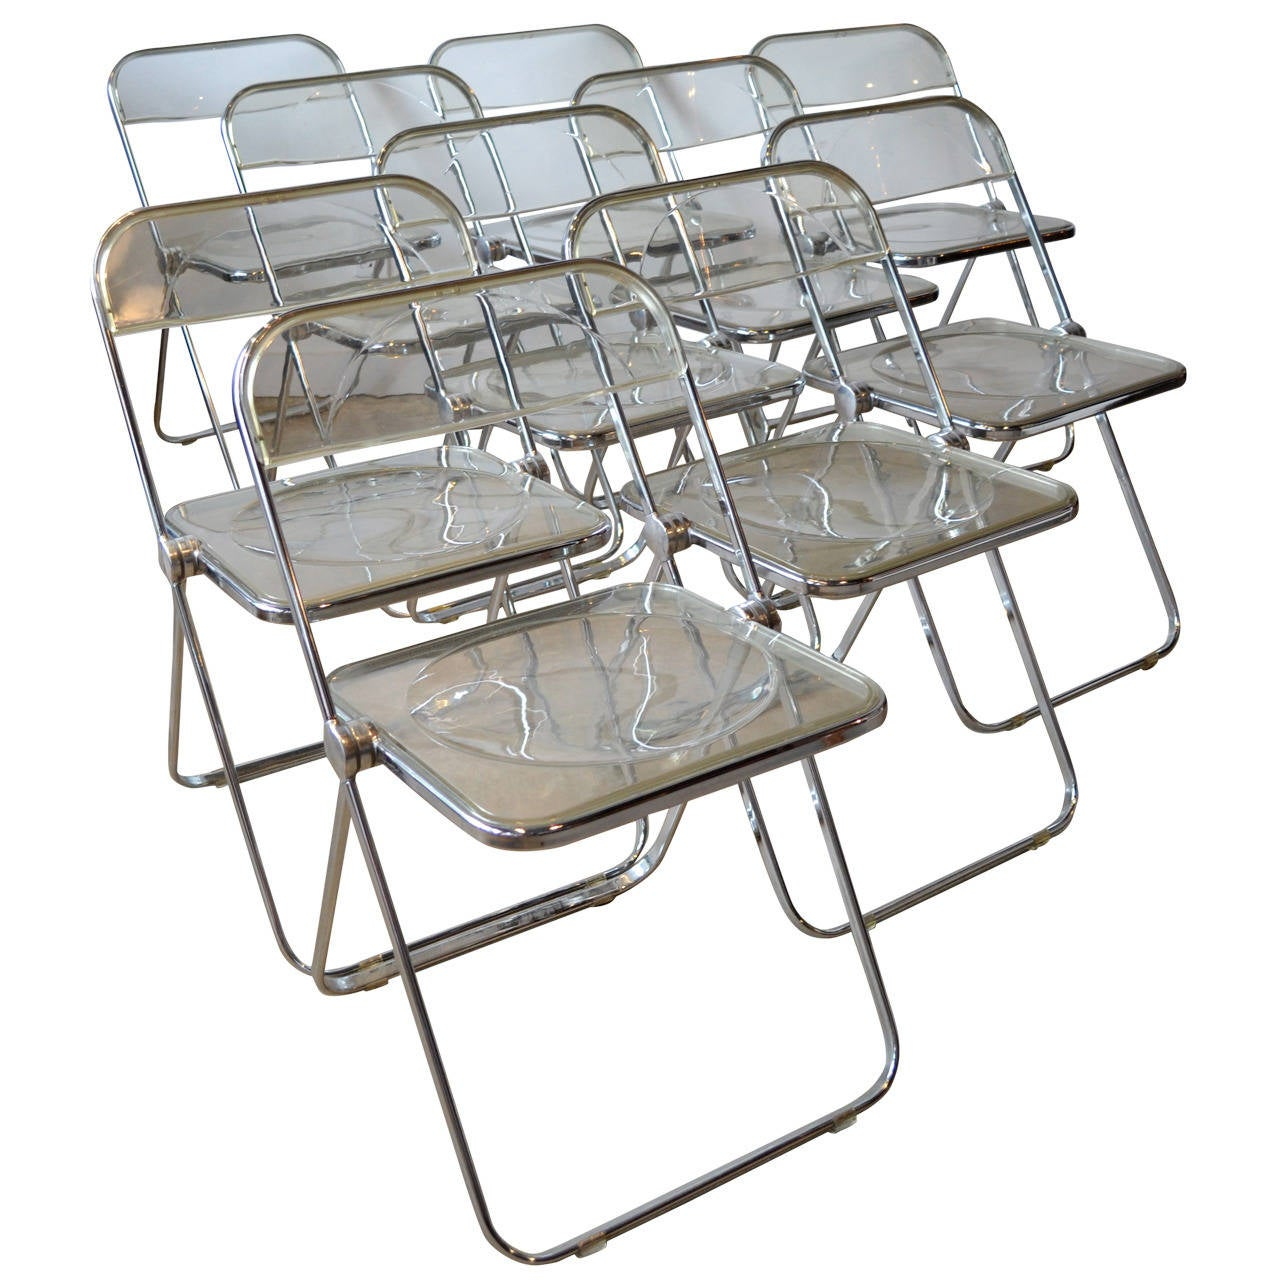 Aluminum Folding Chair Ten